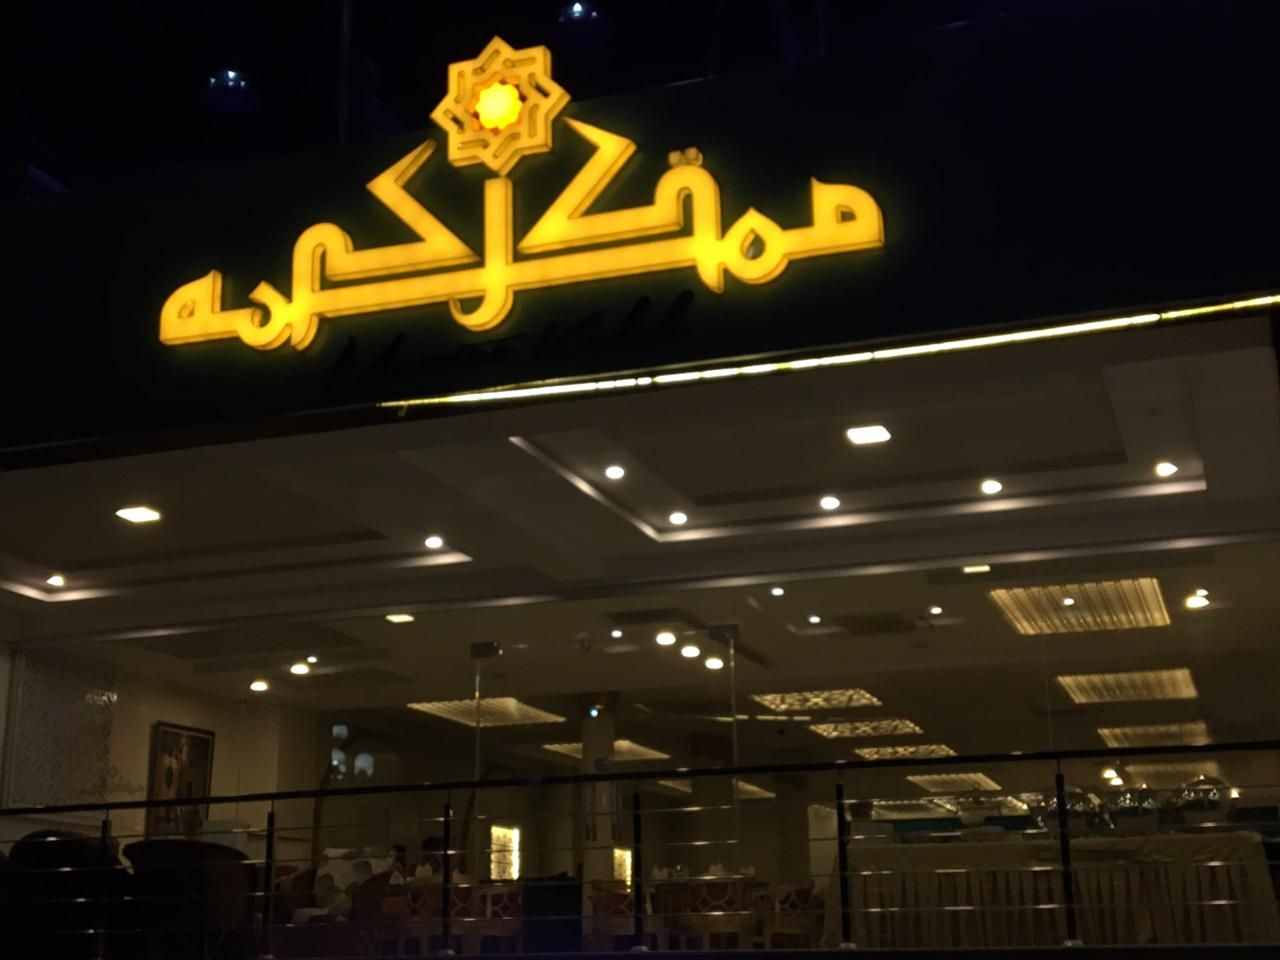 Review On The Beautiful Mumtaz Kadah Phase 7 Bahria Town Rawalpindi Mumtaz Kadah Is A Beautiful Restaurant Located In Phase 7 Ba Rawalpindi Best Restaurant